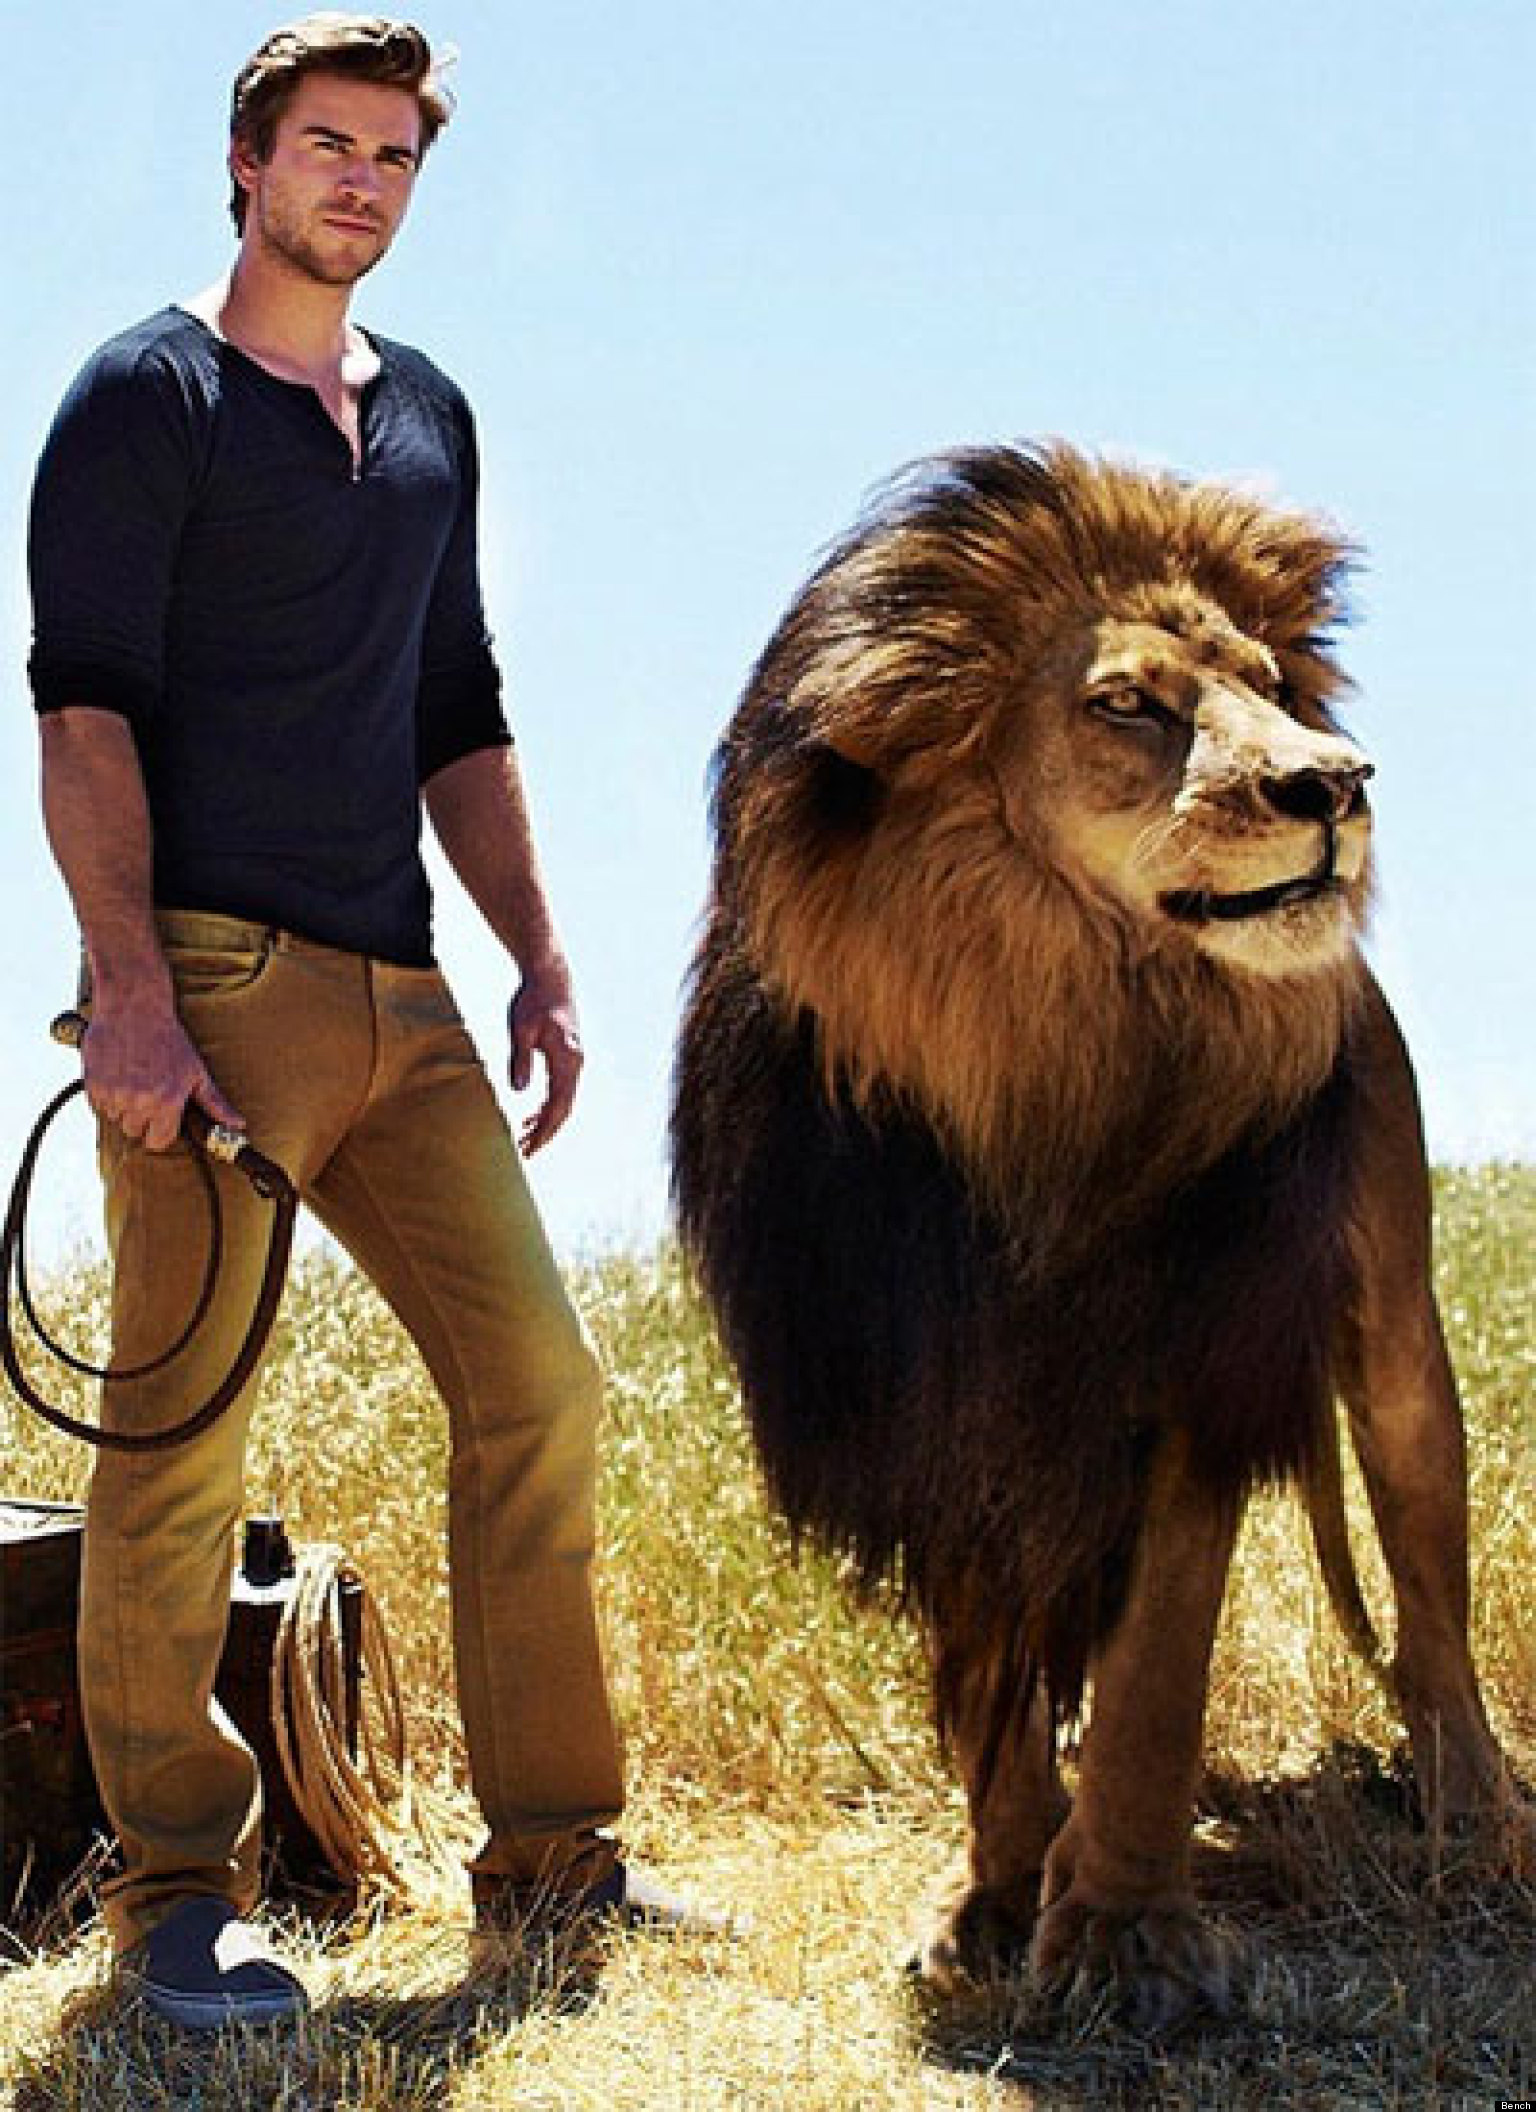 Cute Wallpapers Of All Kind Of Animals Liam Hemsworth Poses With A Real Life Lion In New Bench